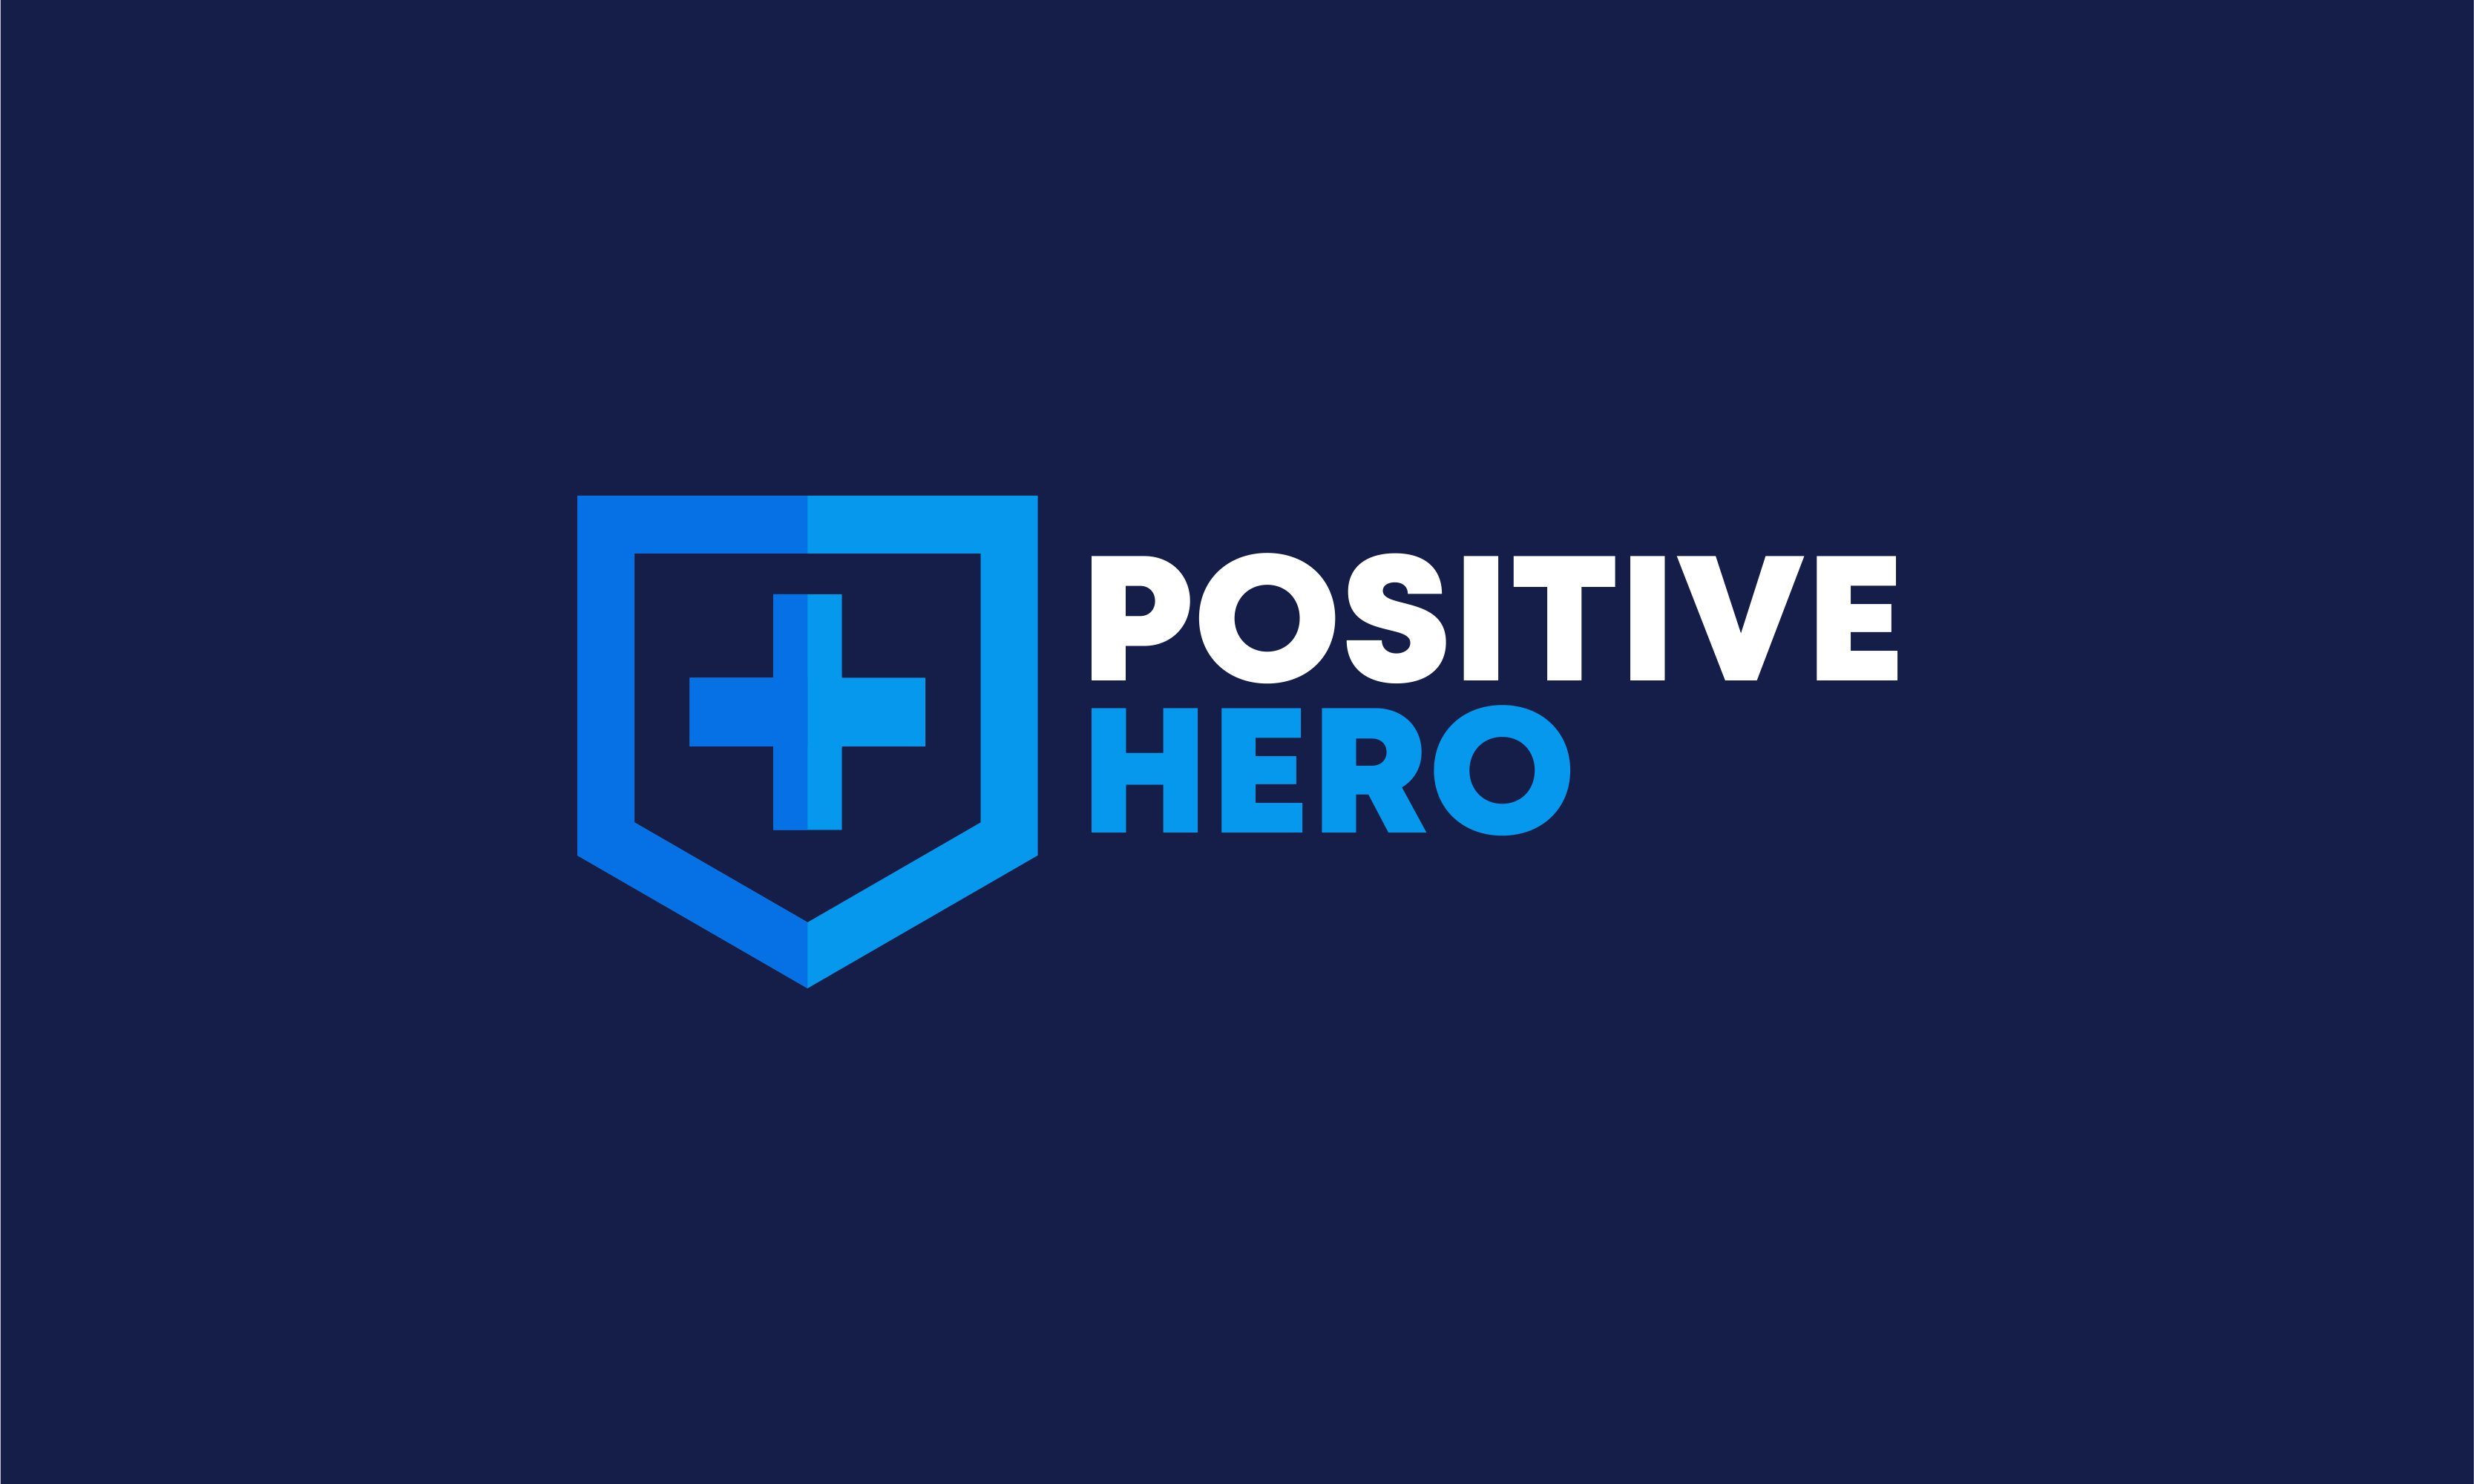 Positivehero - Friendly product name for sale